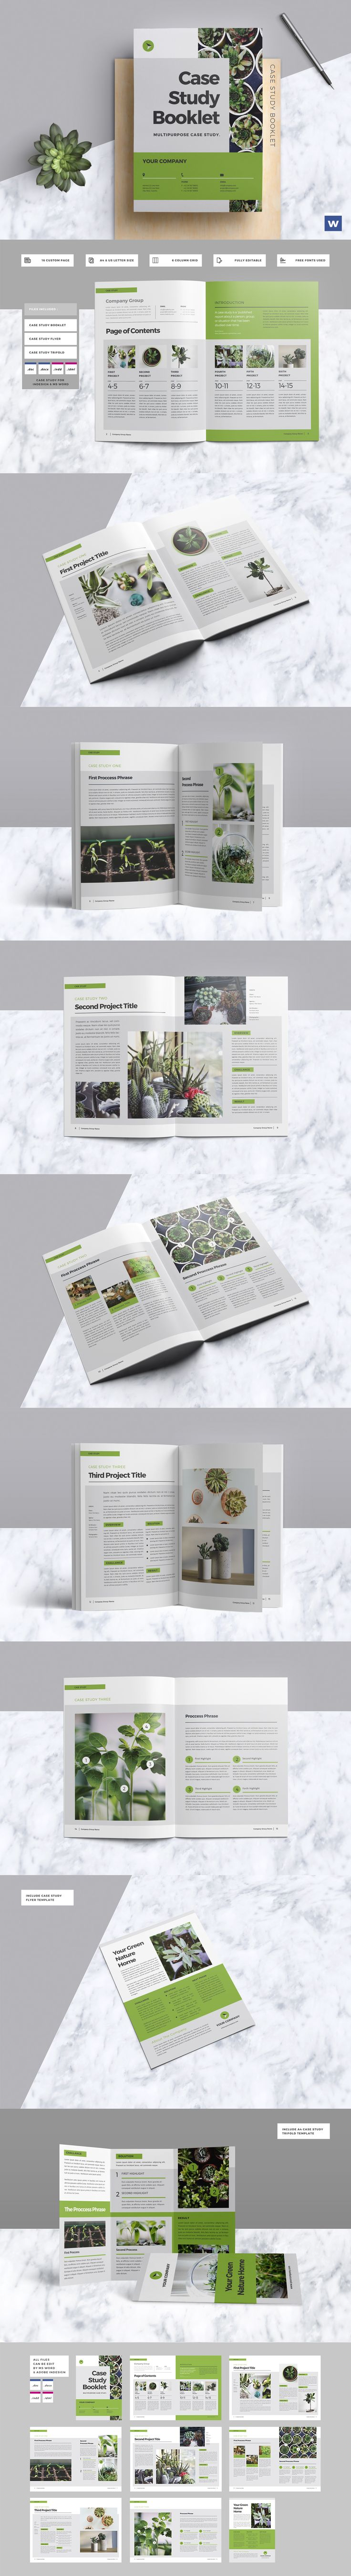 Clean & Professional Case Study Booklet Template InDesign INDD - 16 Pages, A4 & US letter Size